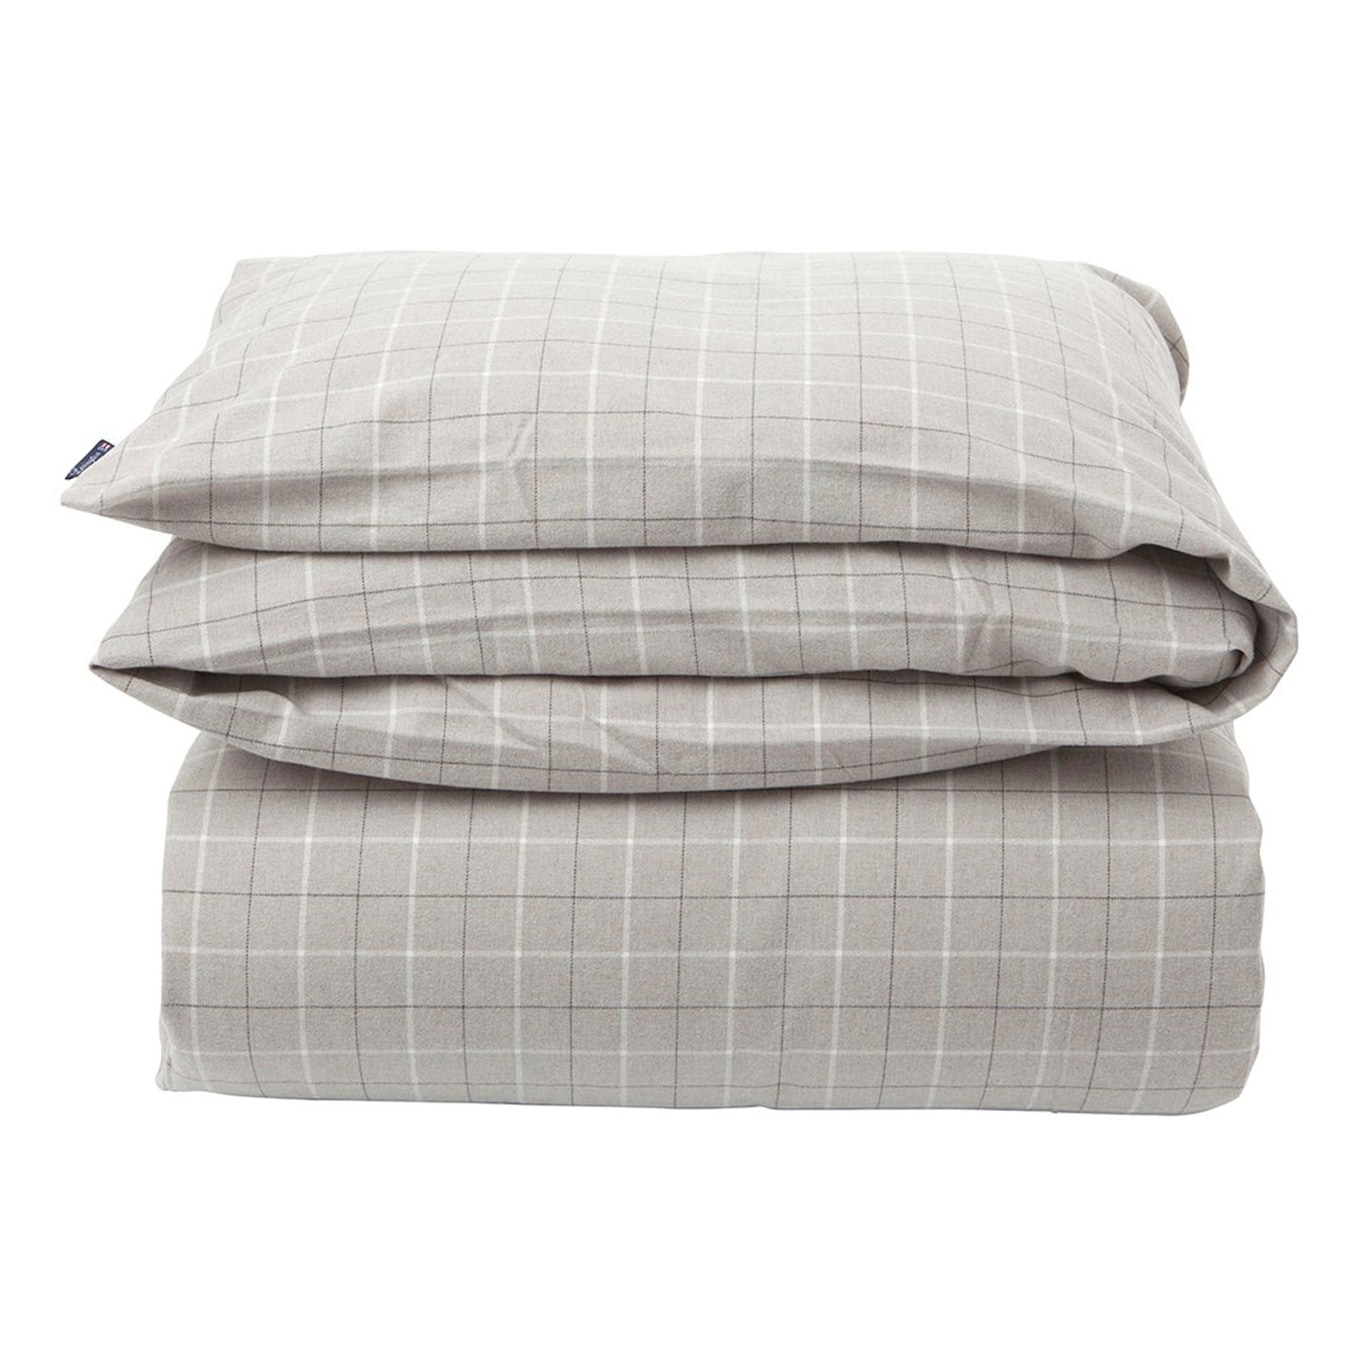 1f6e79c4 Cashmere Flannel Duvet, Grey - Lexington @ Rum21.no